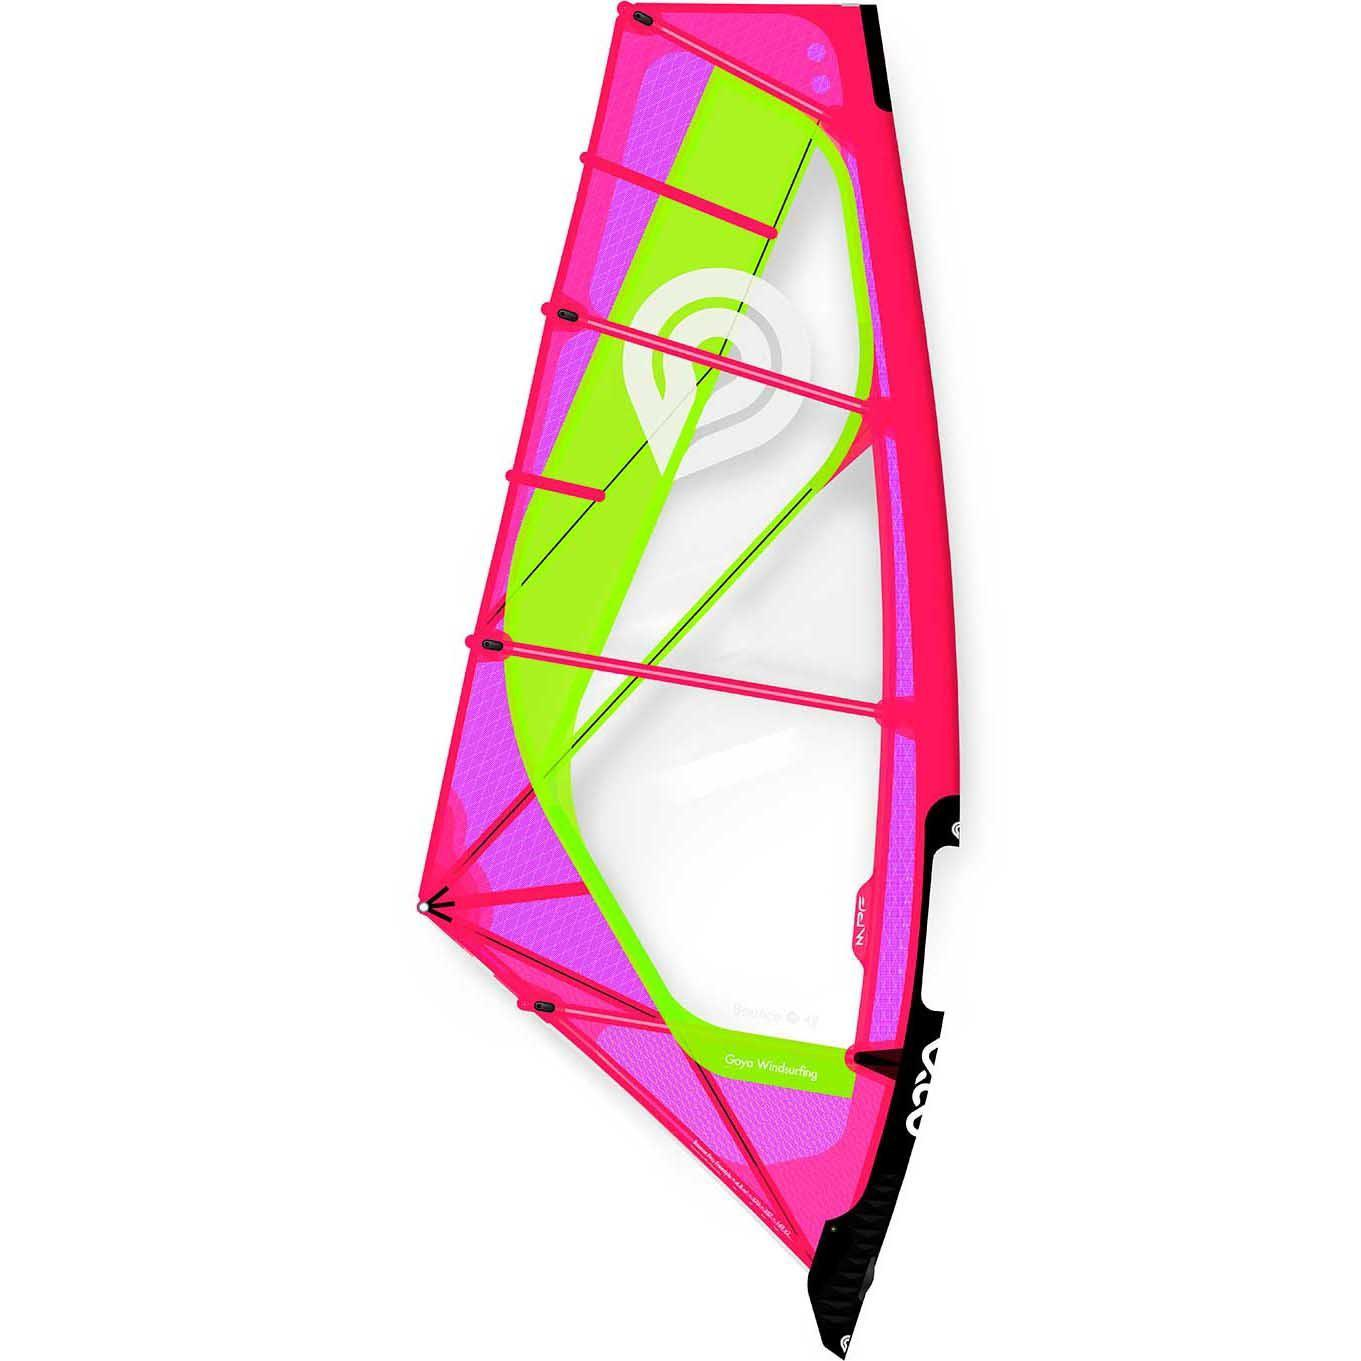 2020 Goya Bounce Pro Windsurfing Sail-Big Winds